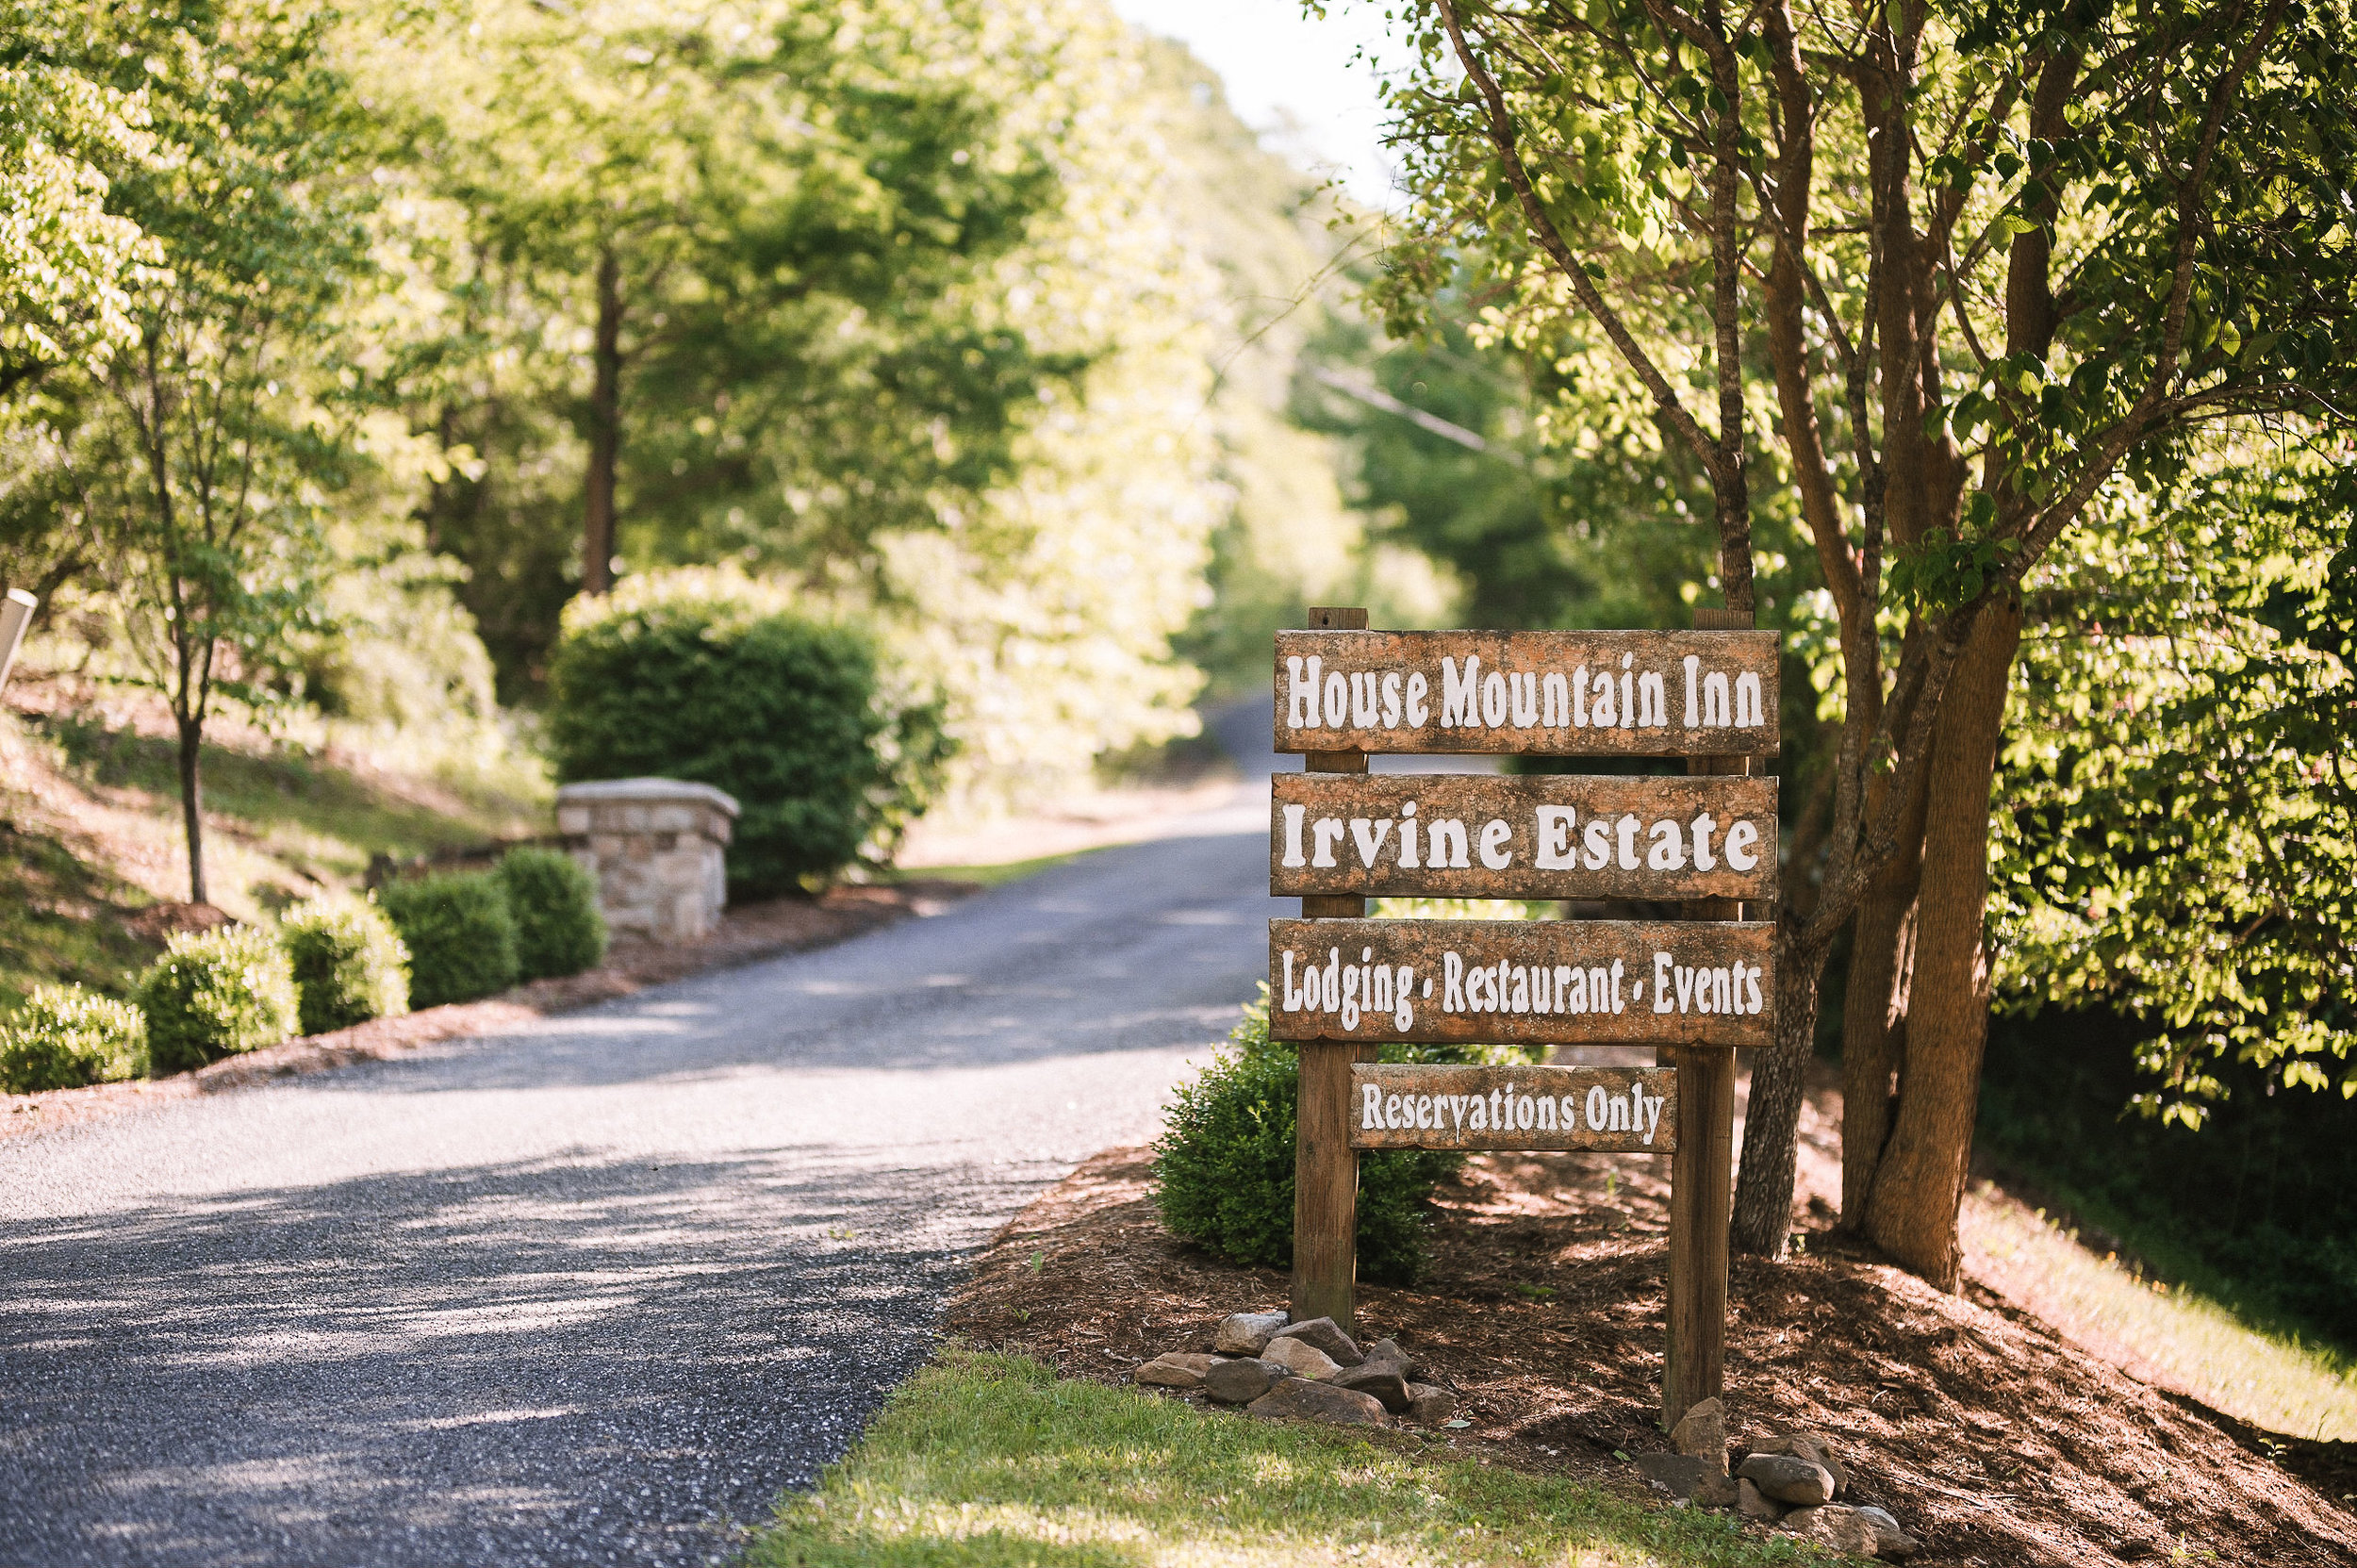 venue sign at House Mountain Inn & Irvine Estate